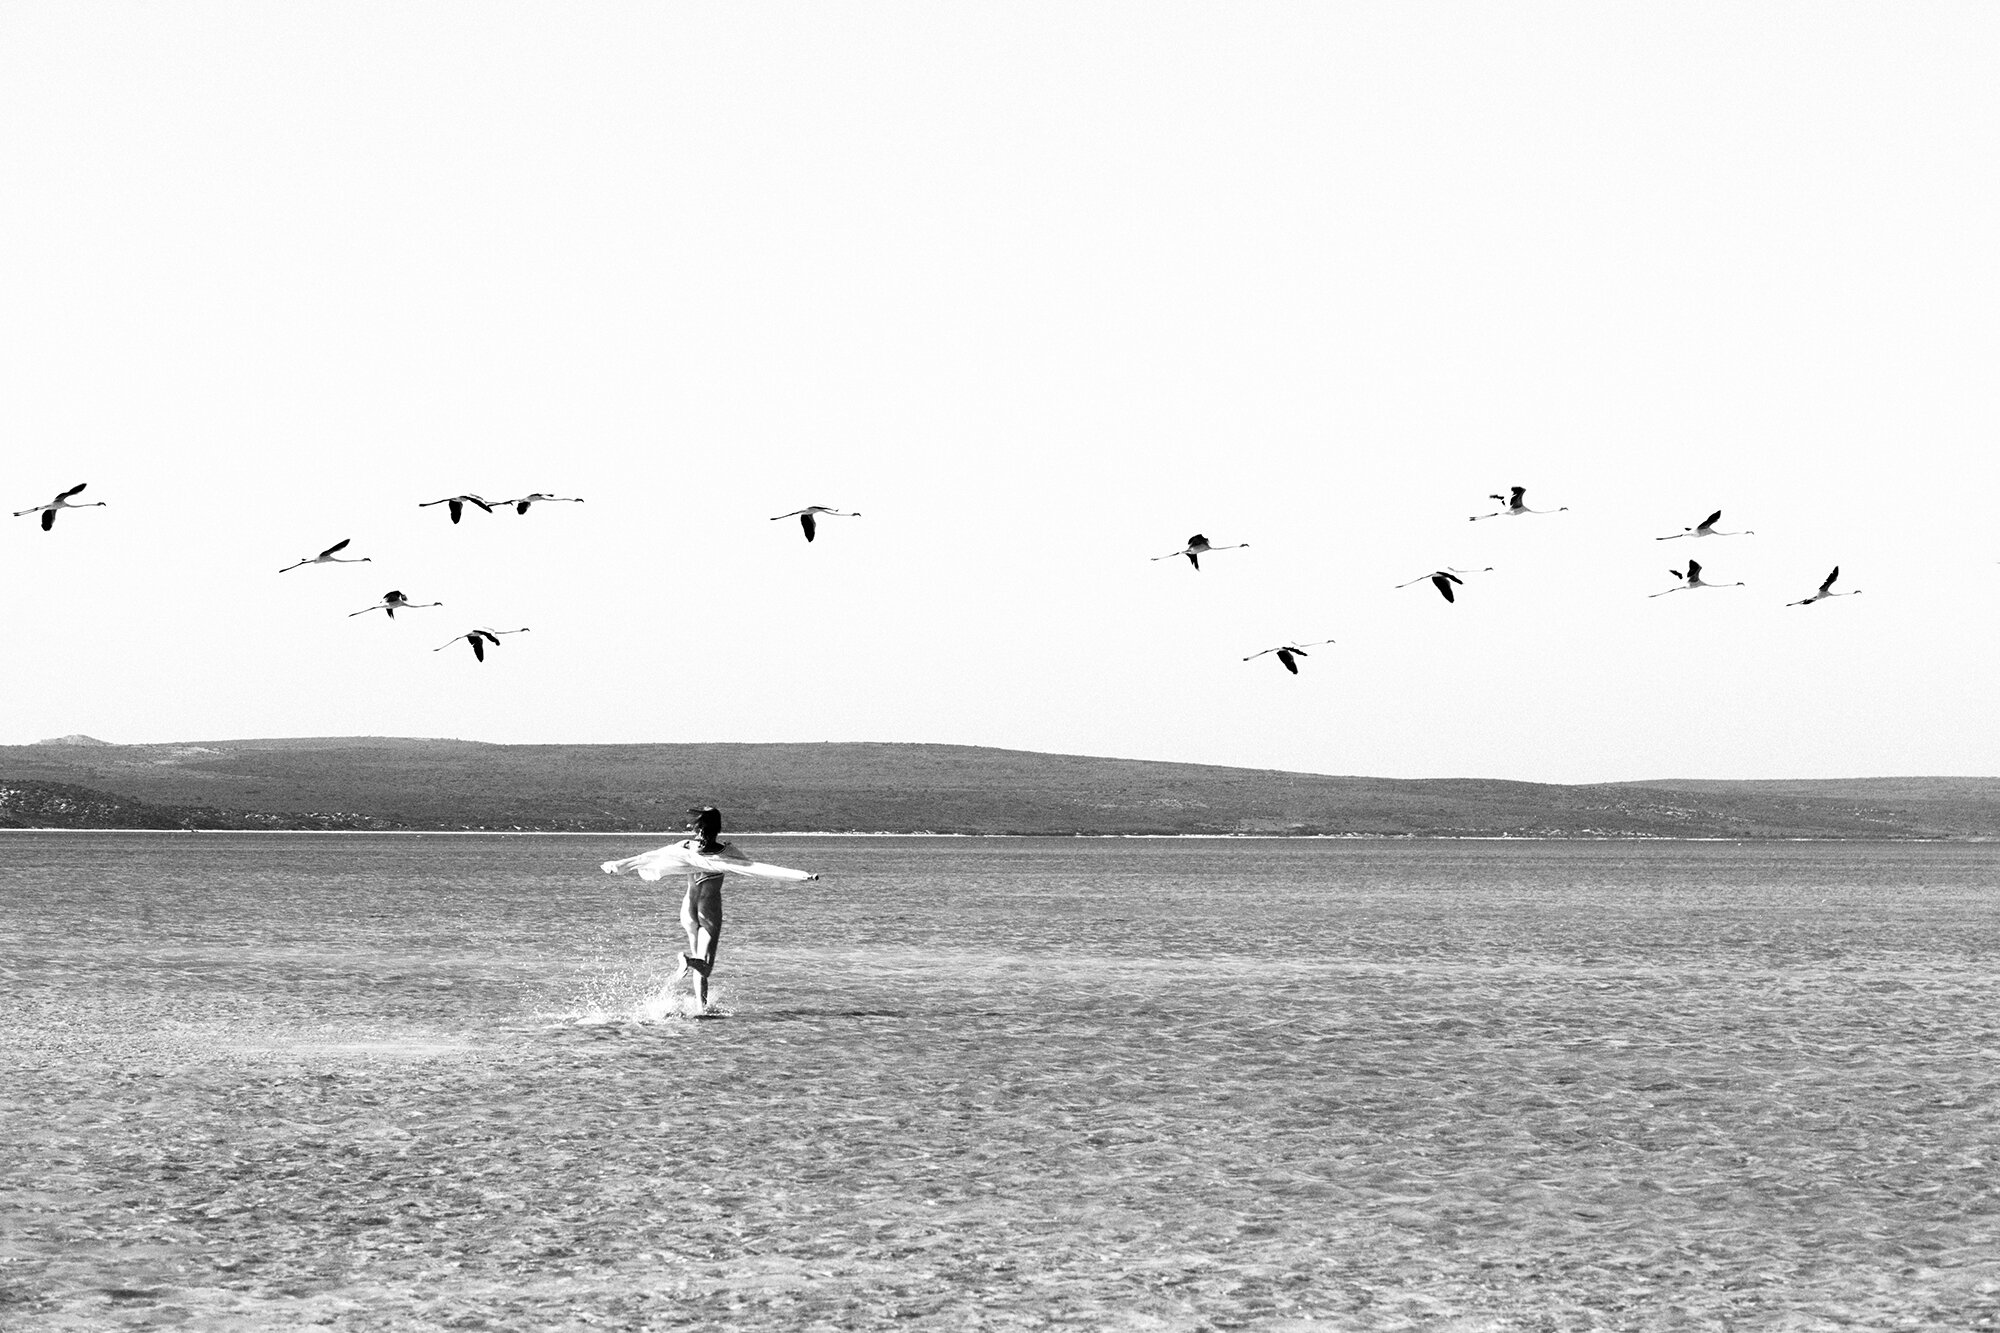 Sarah & the Birds, West Coast, South Africa 2017.